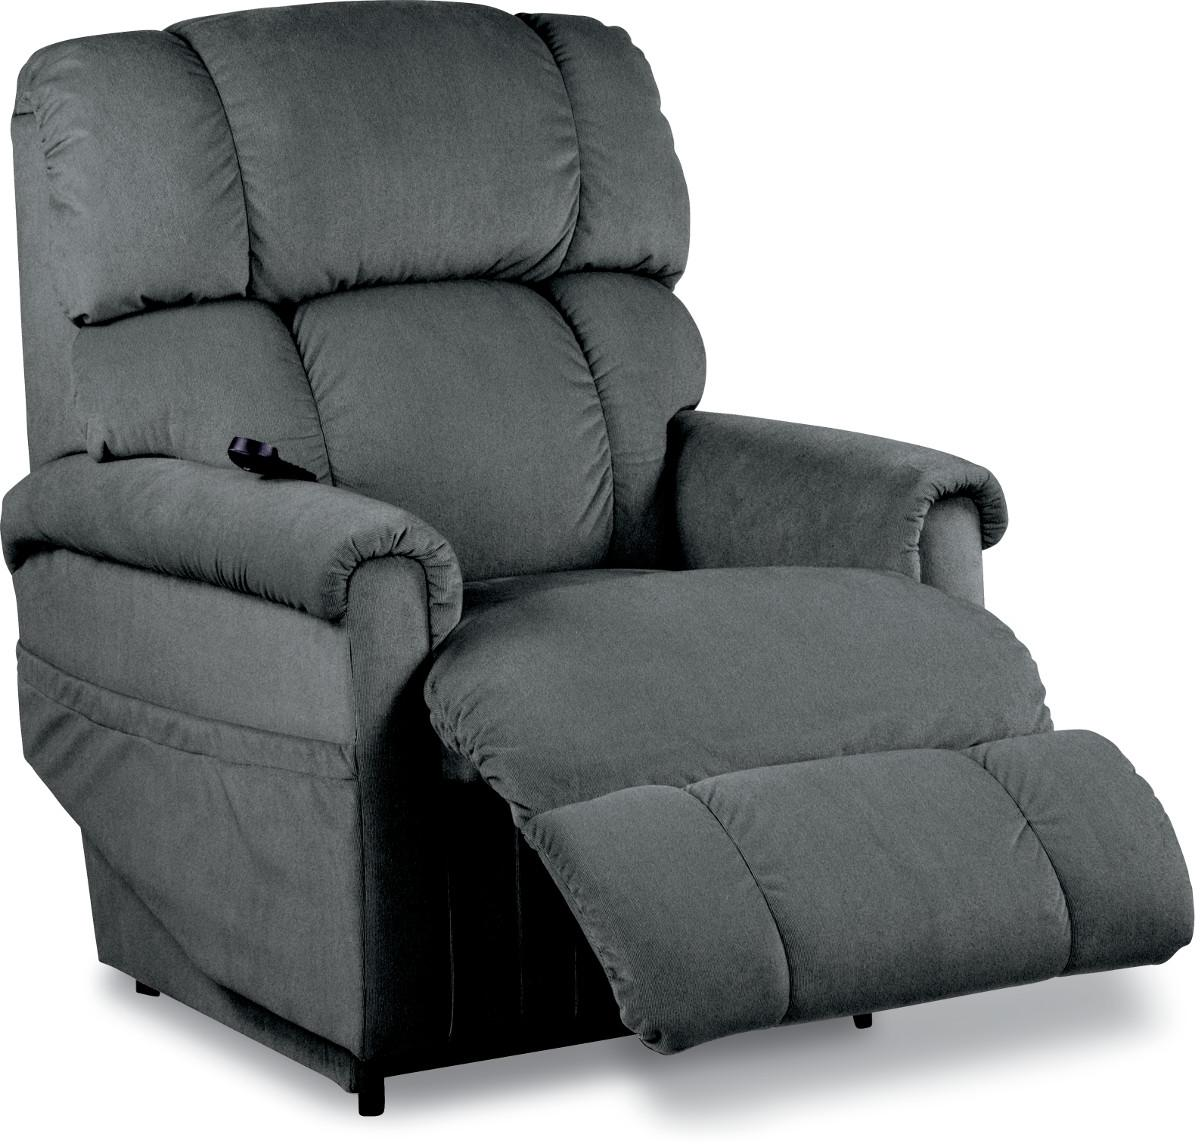 Platinum Luxury Lift 174 Power Recline Xr Recliner With 6